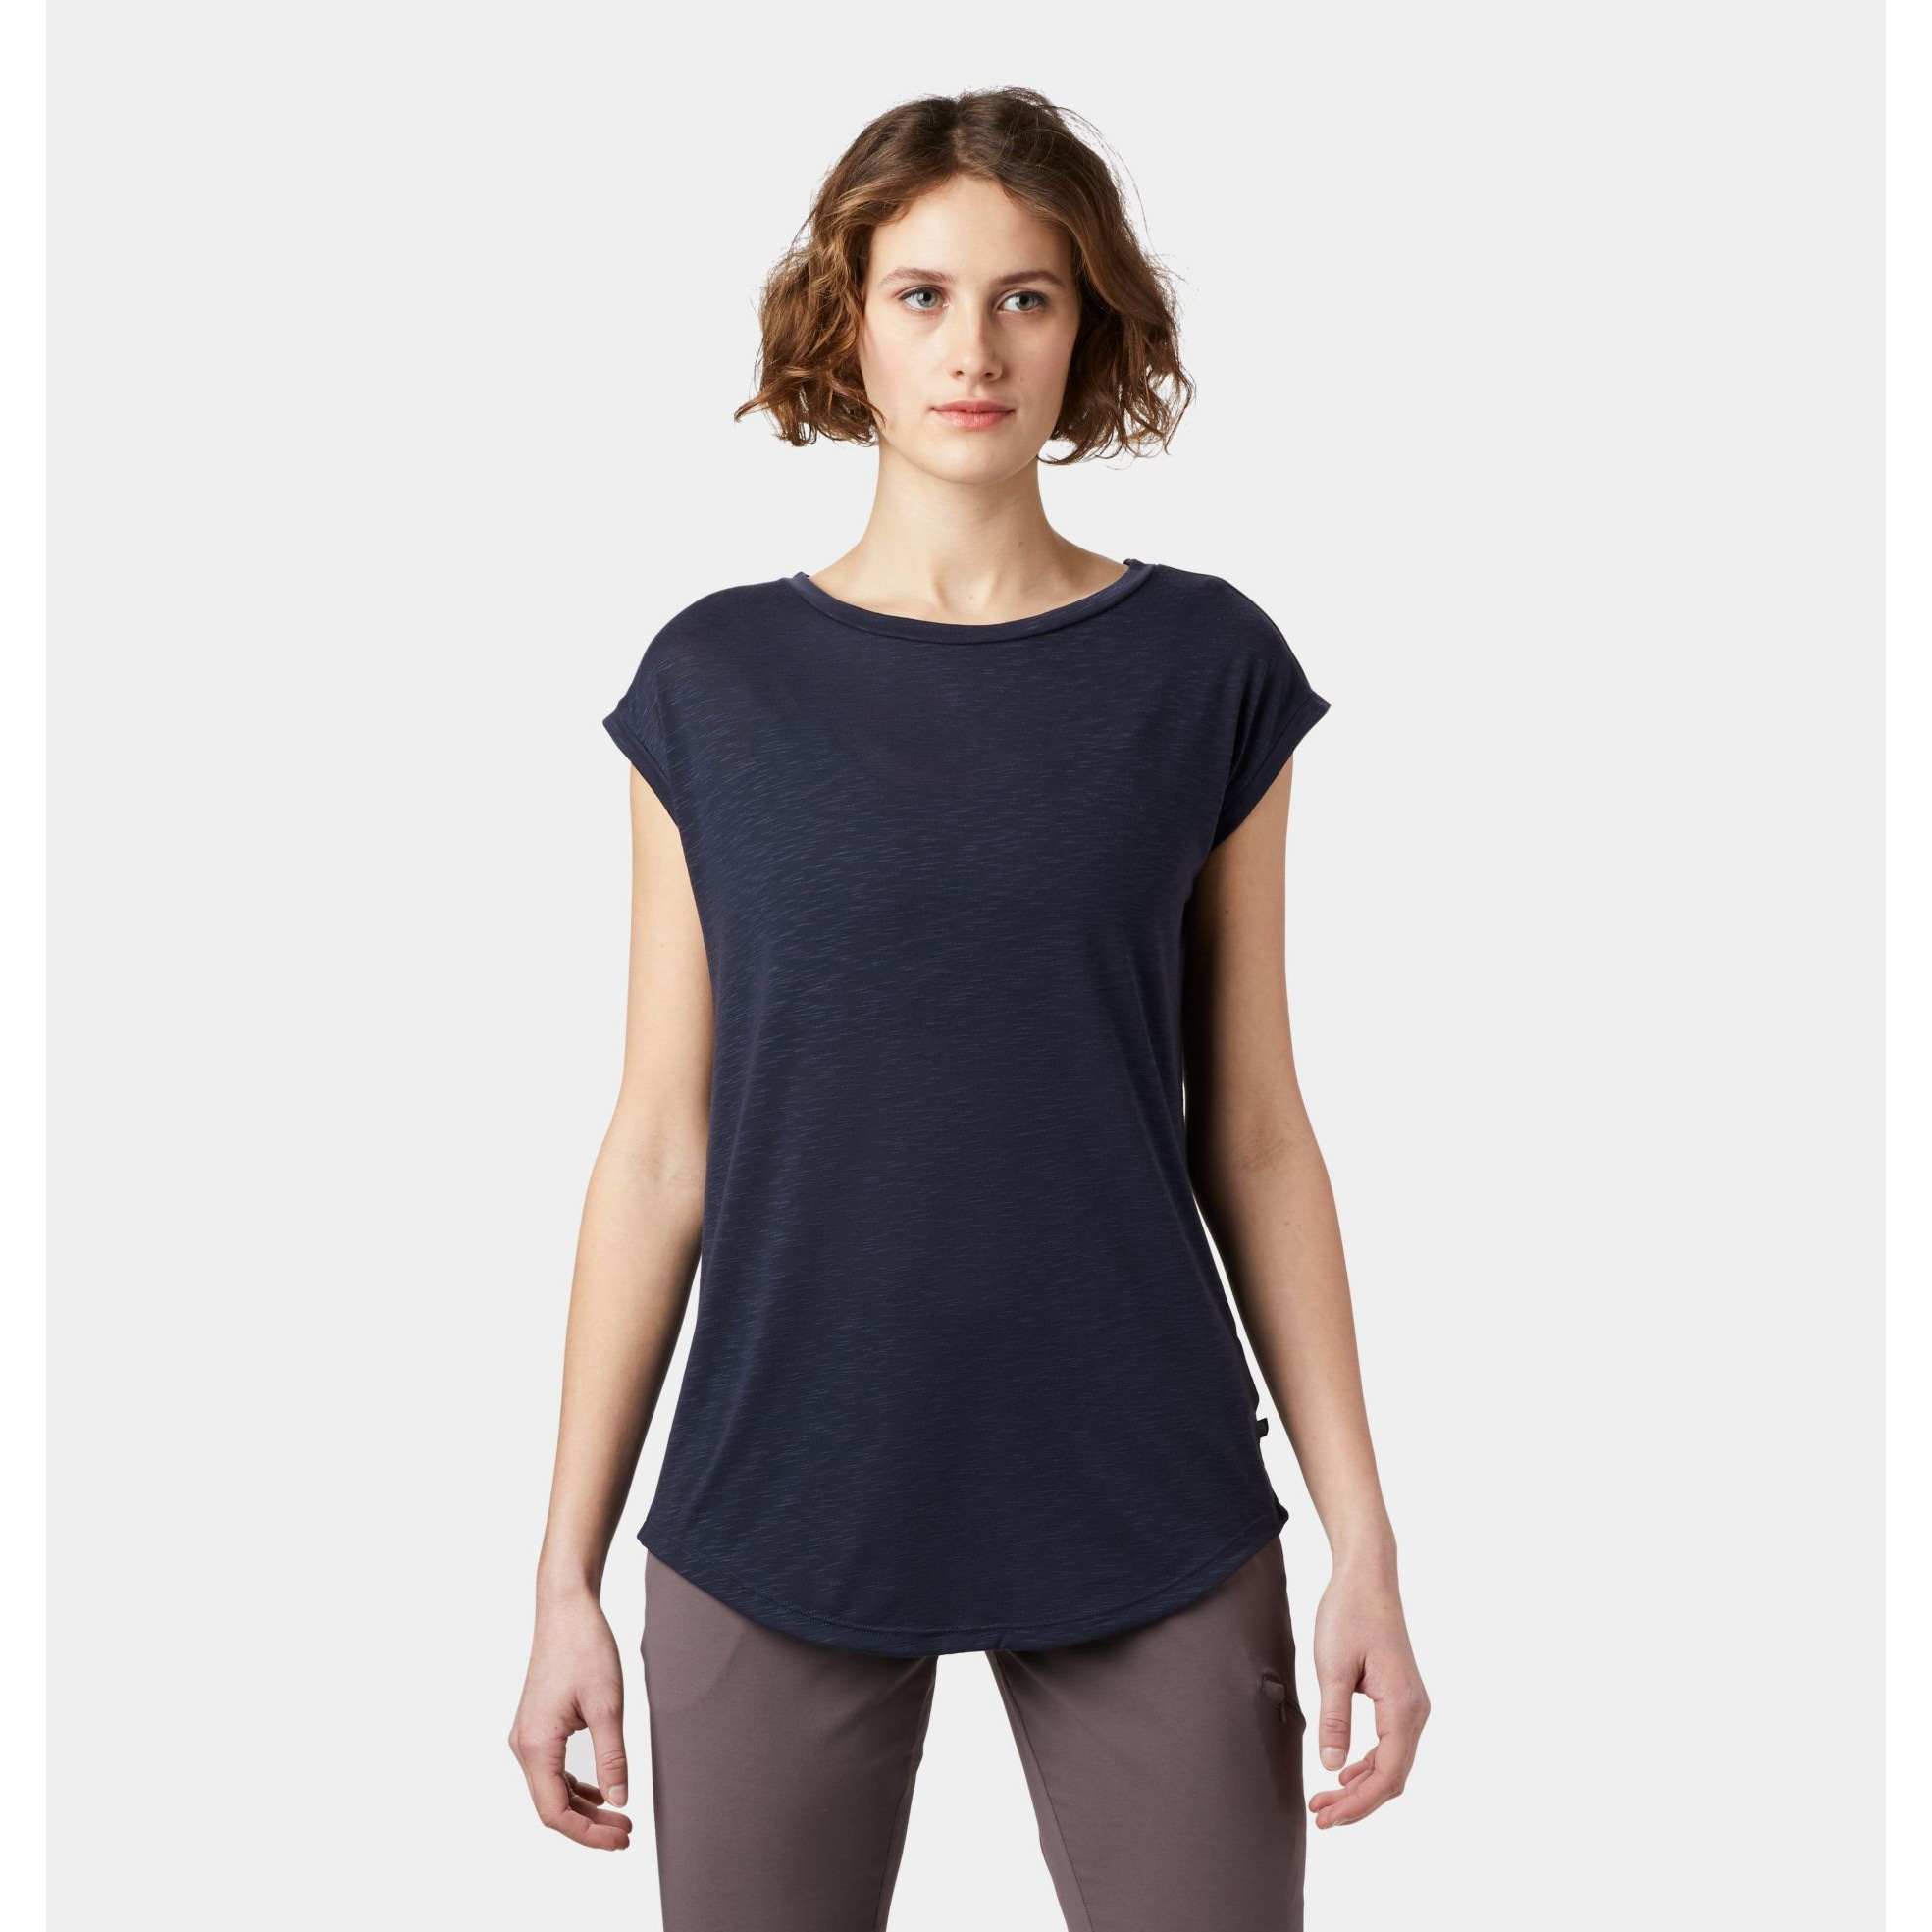 Everyday Perfect Tee Short Sleeve - Women's